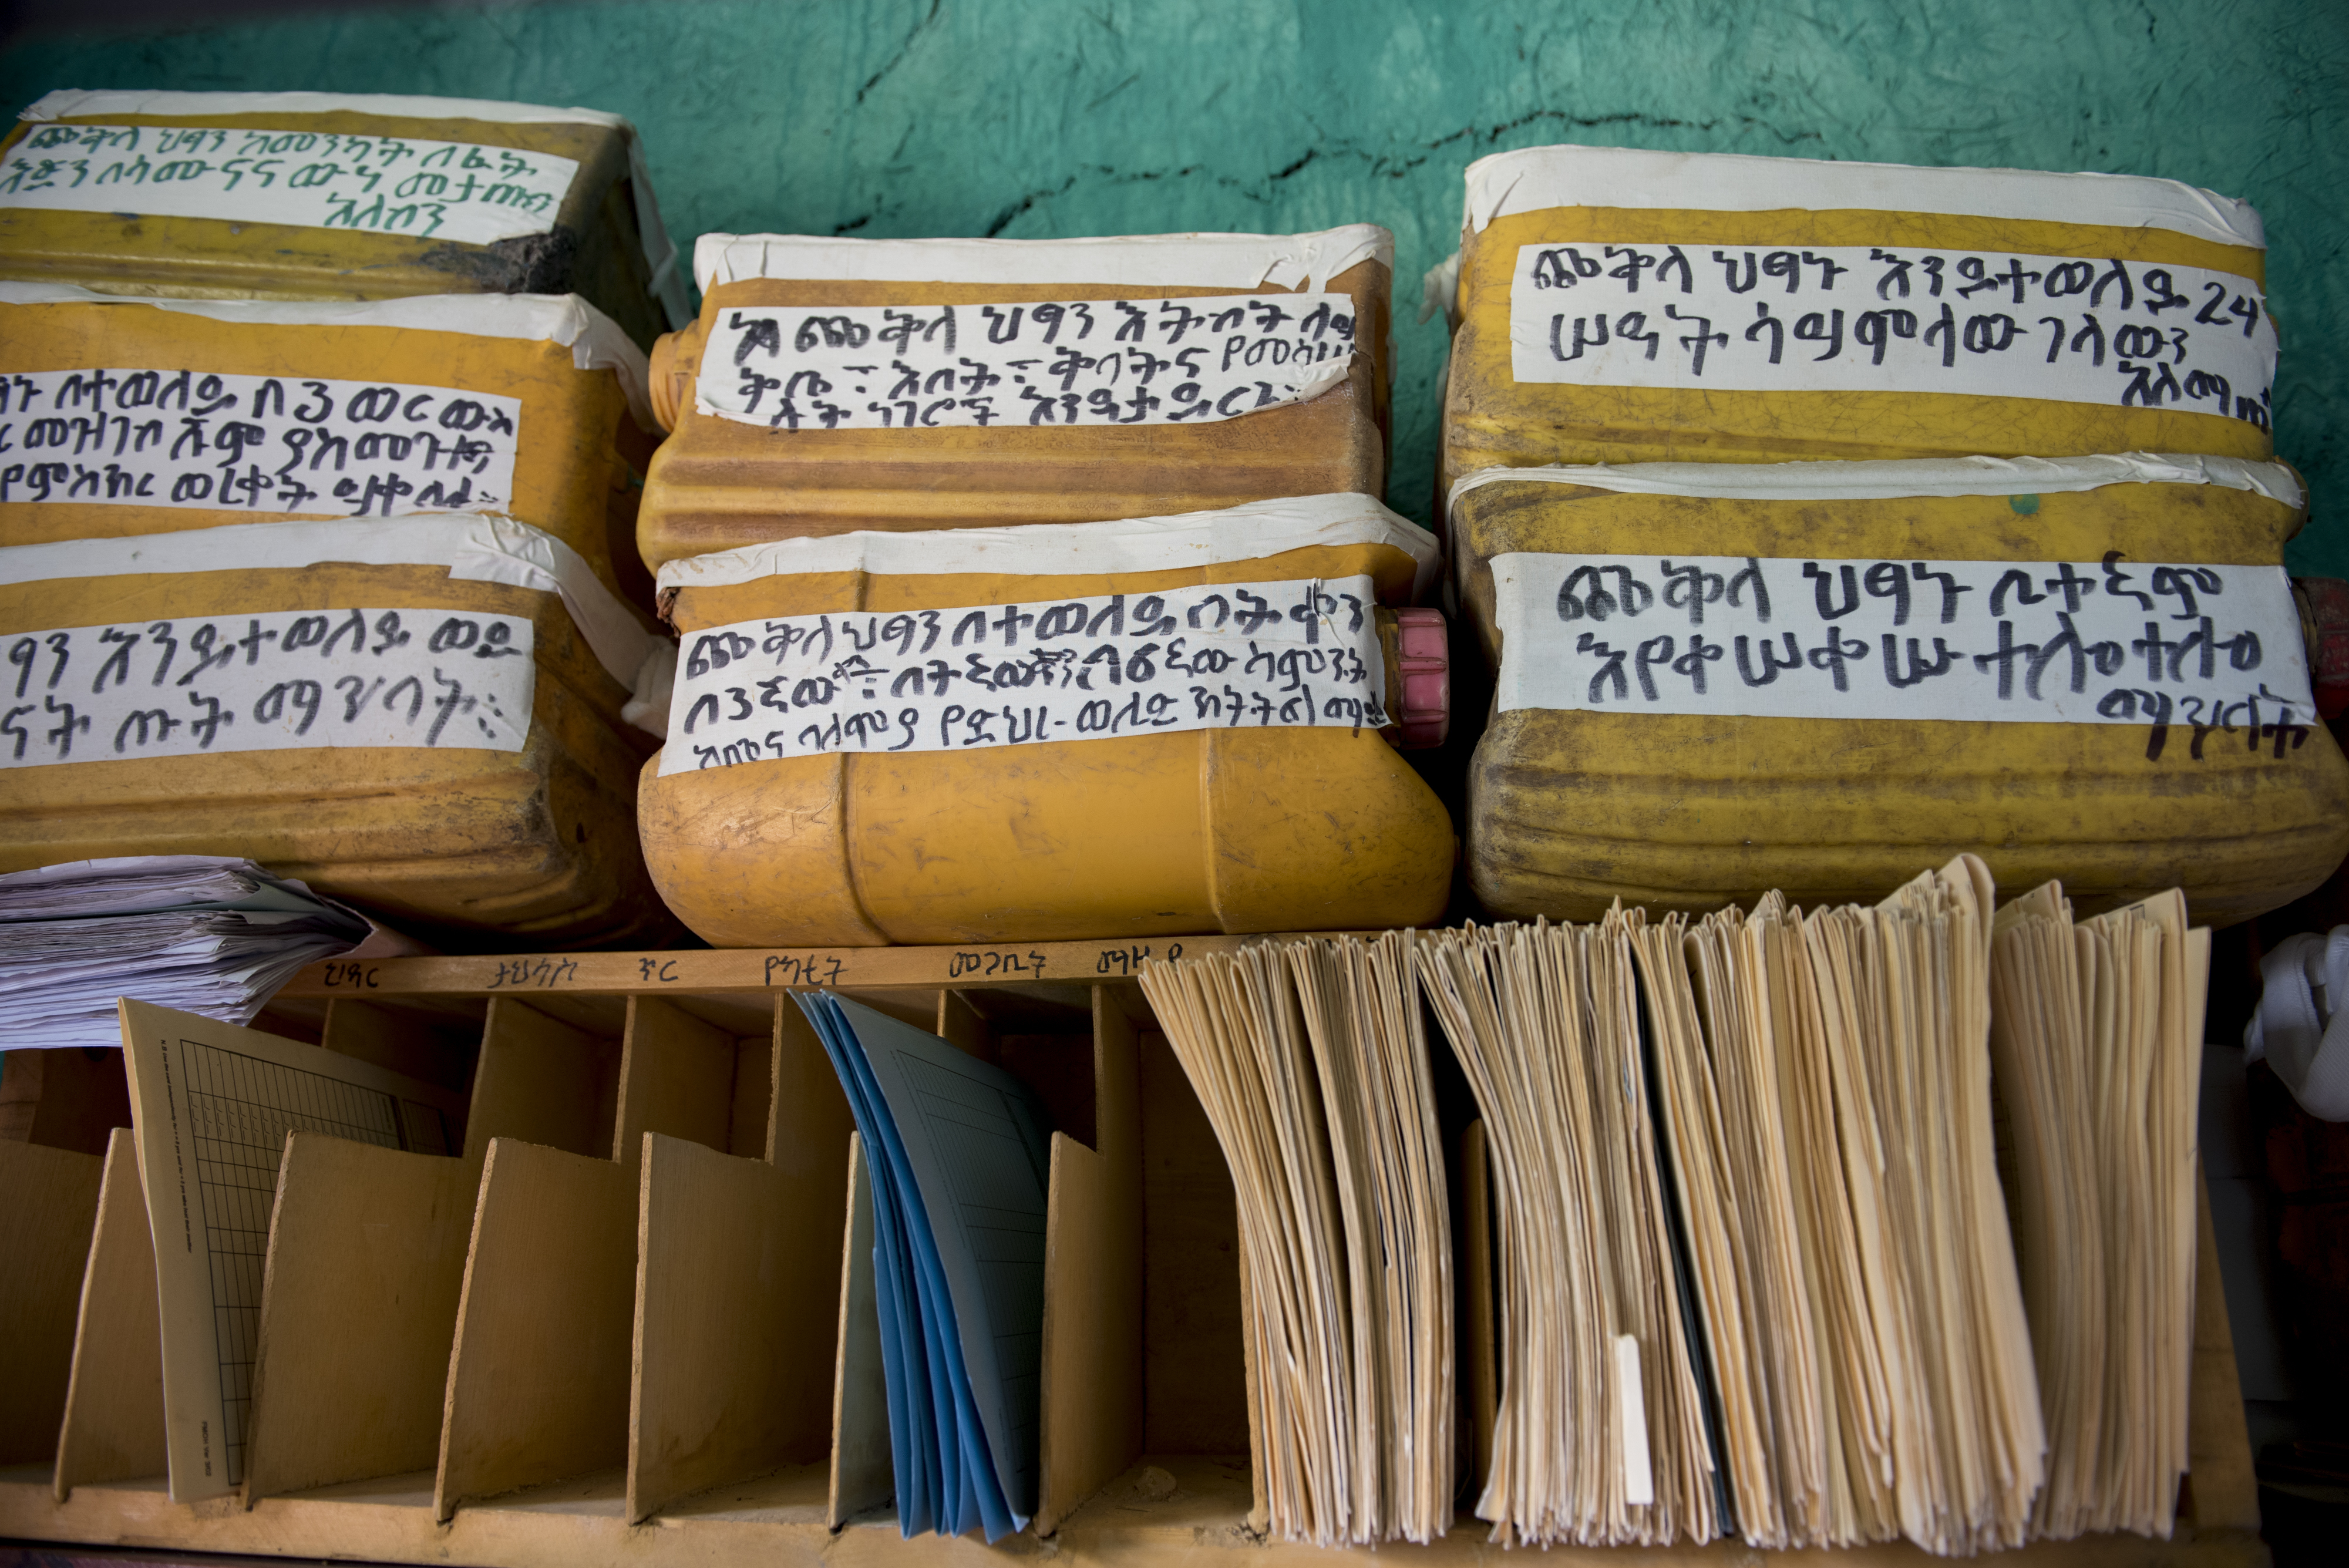 Clinic Health Records, Ethiopia